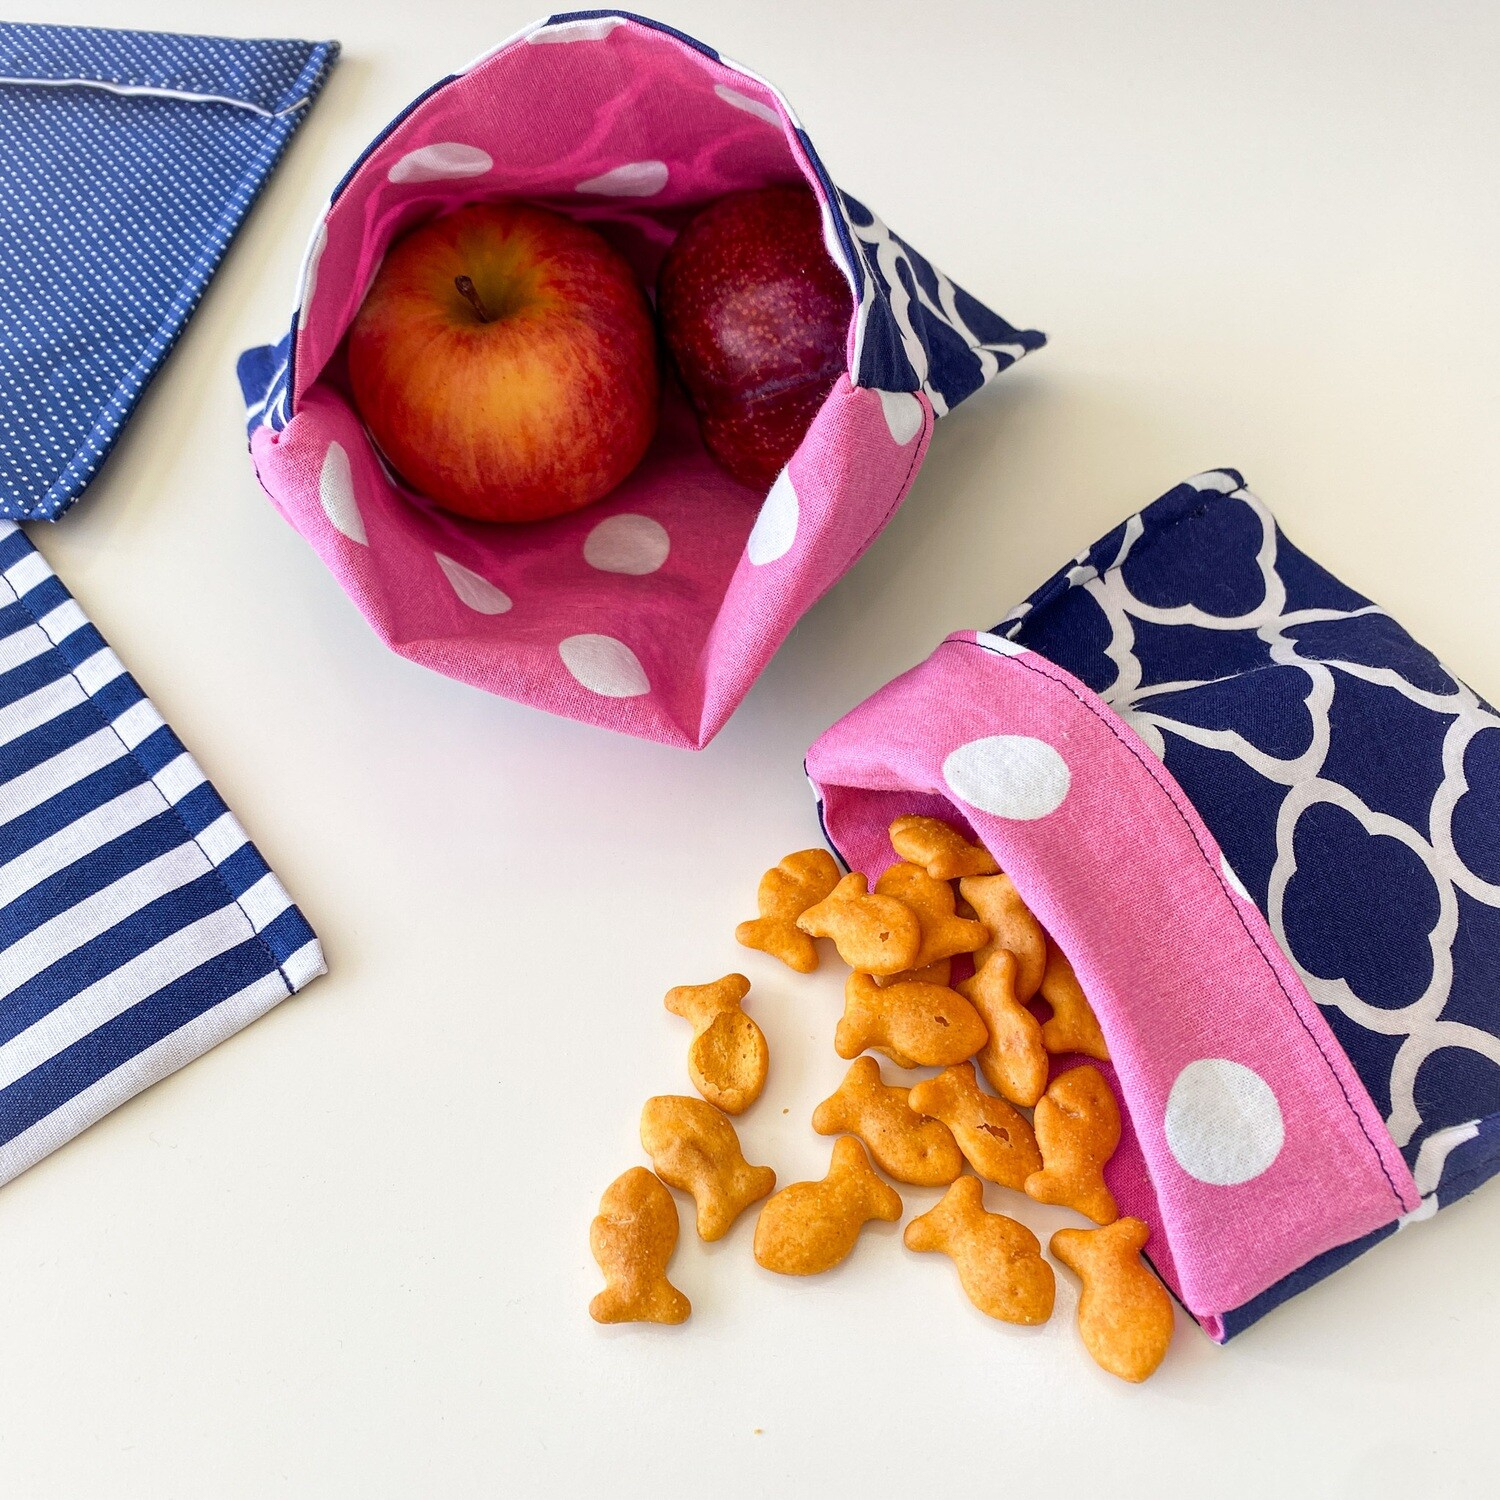 Washable Reusable Snack Bag, Storage Pouch with Easy Fold-Over Top ECO-FRIENDLY